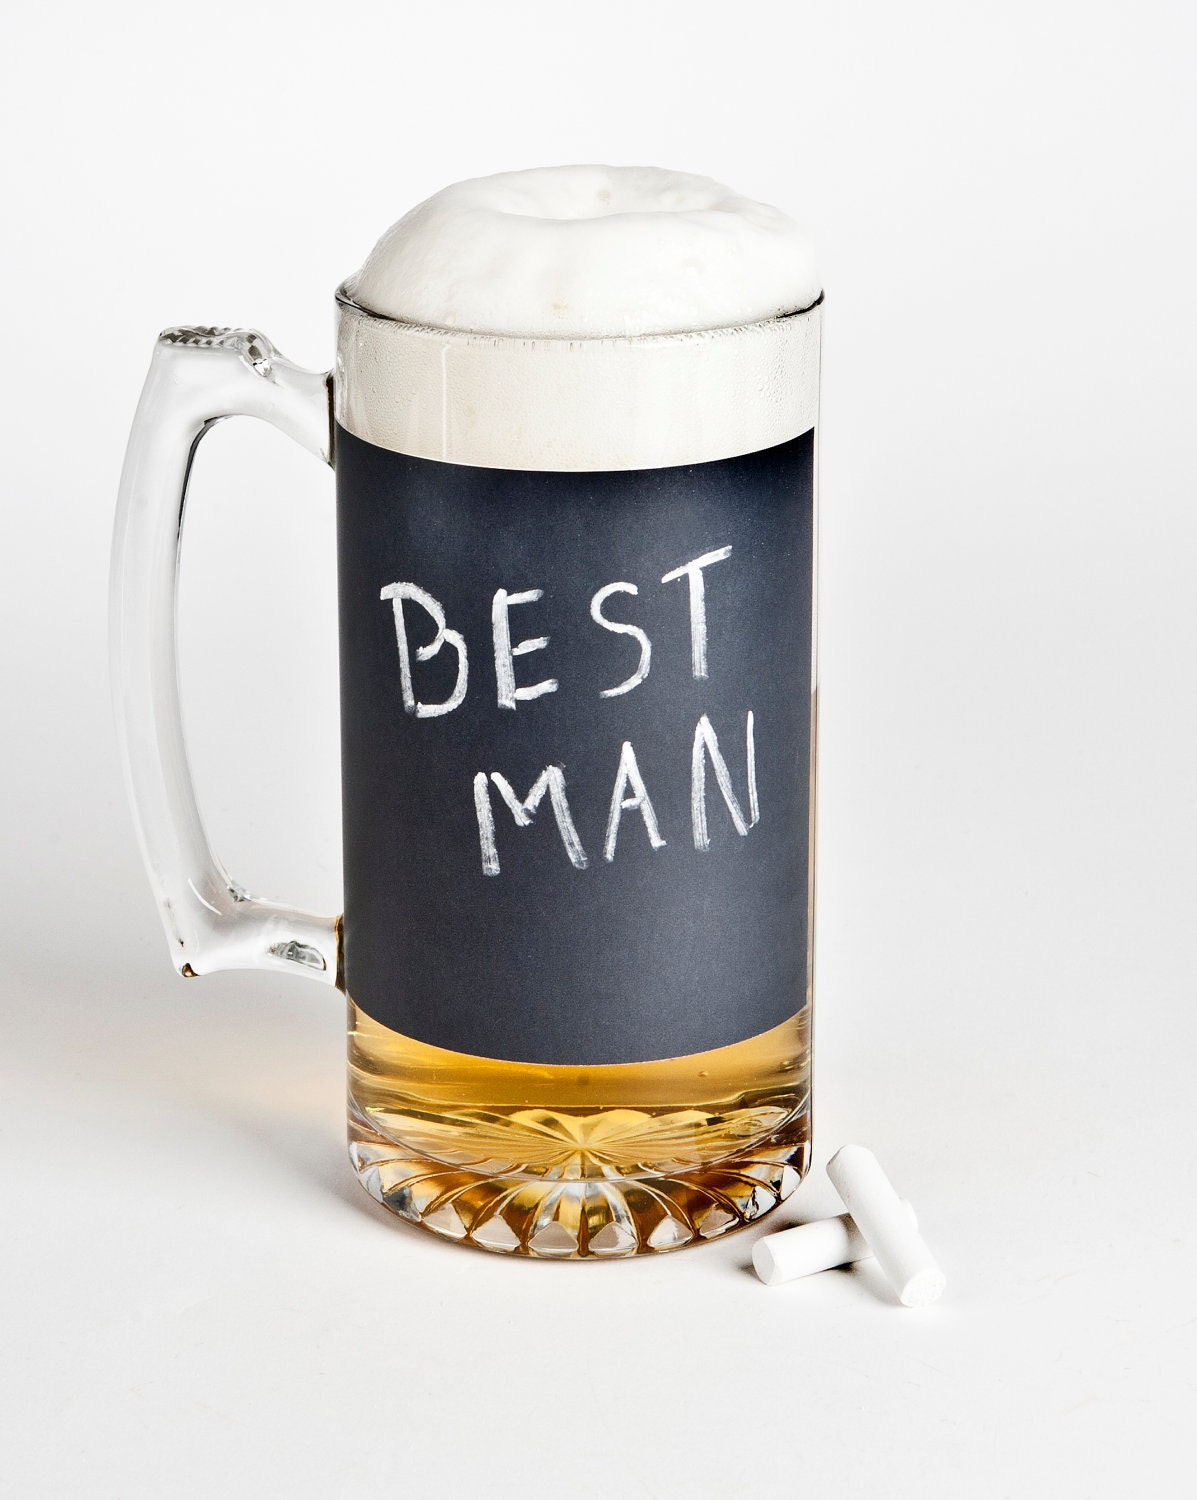 Unique Wedding Gifts For Groomsmen: Chalkboard Beer Mug A Unique Groomsmen Gift